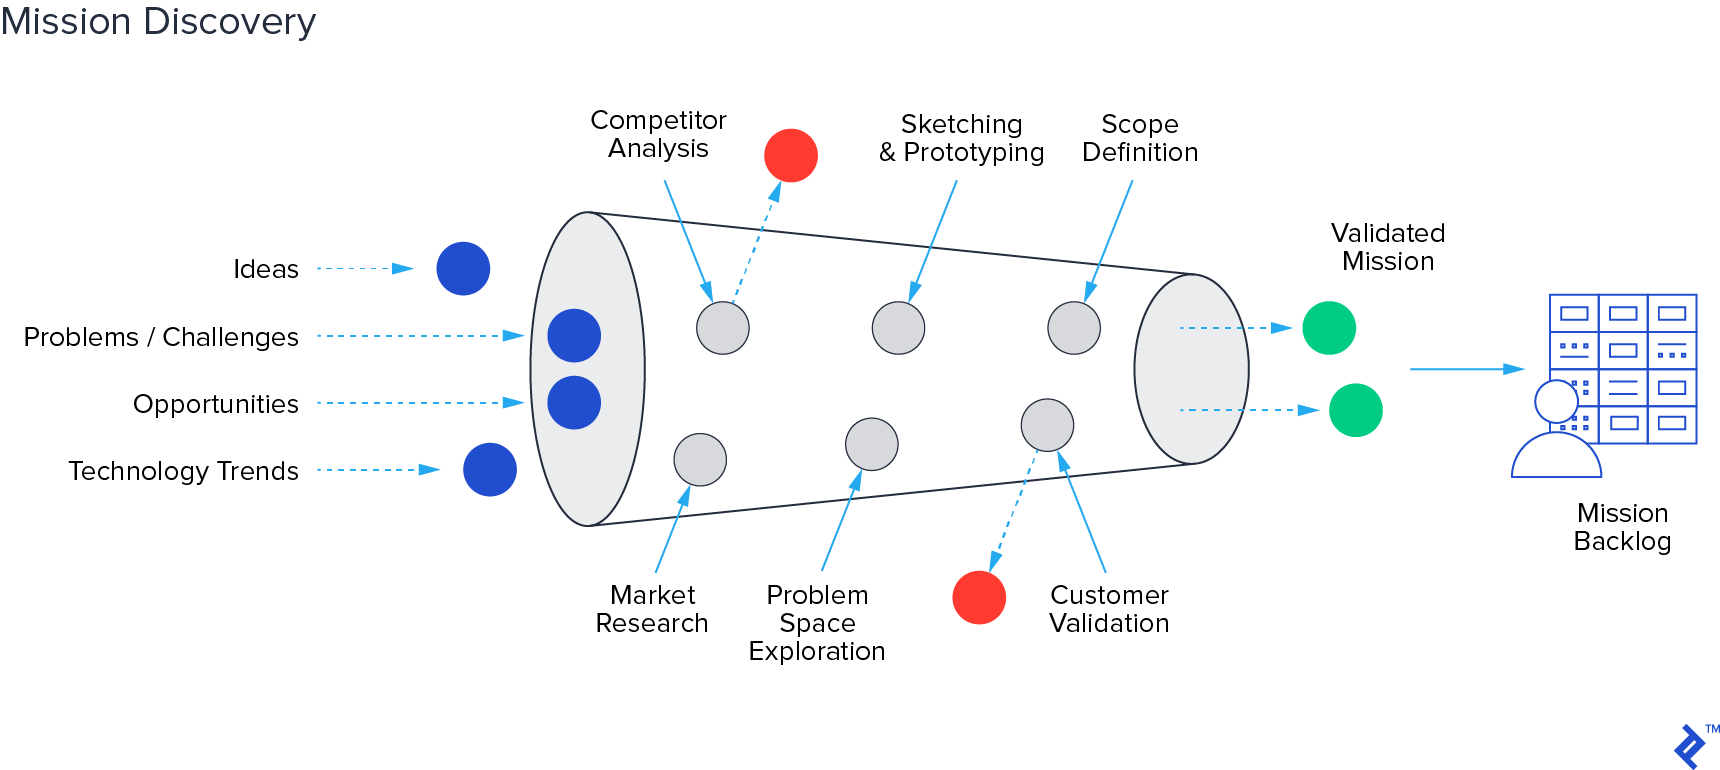 Elements of mission discovery